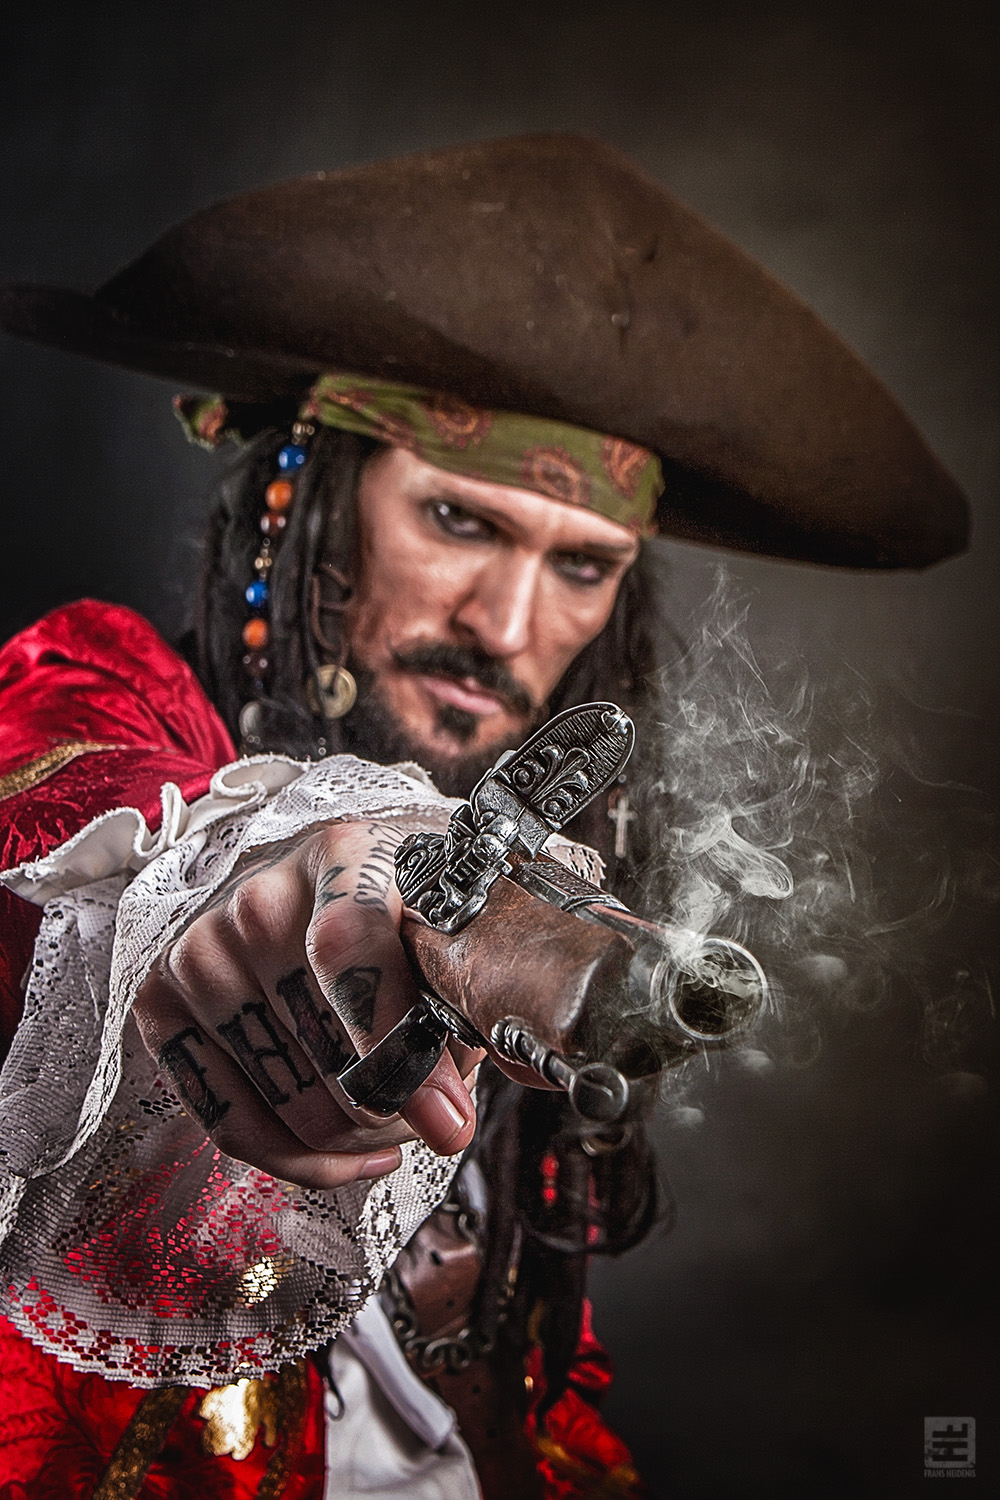 Captain Teague Cosplay. Teague van de Pirates of the Caribean vuurt een oud piraten pistool af.